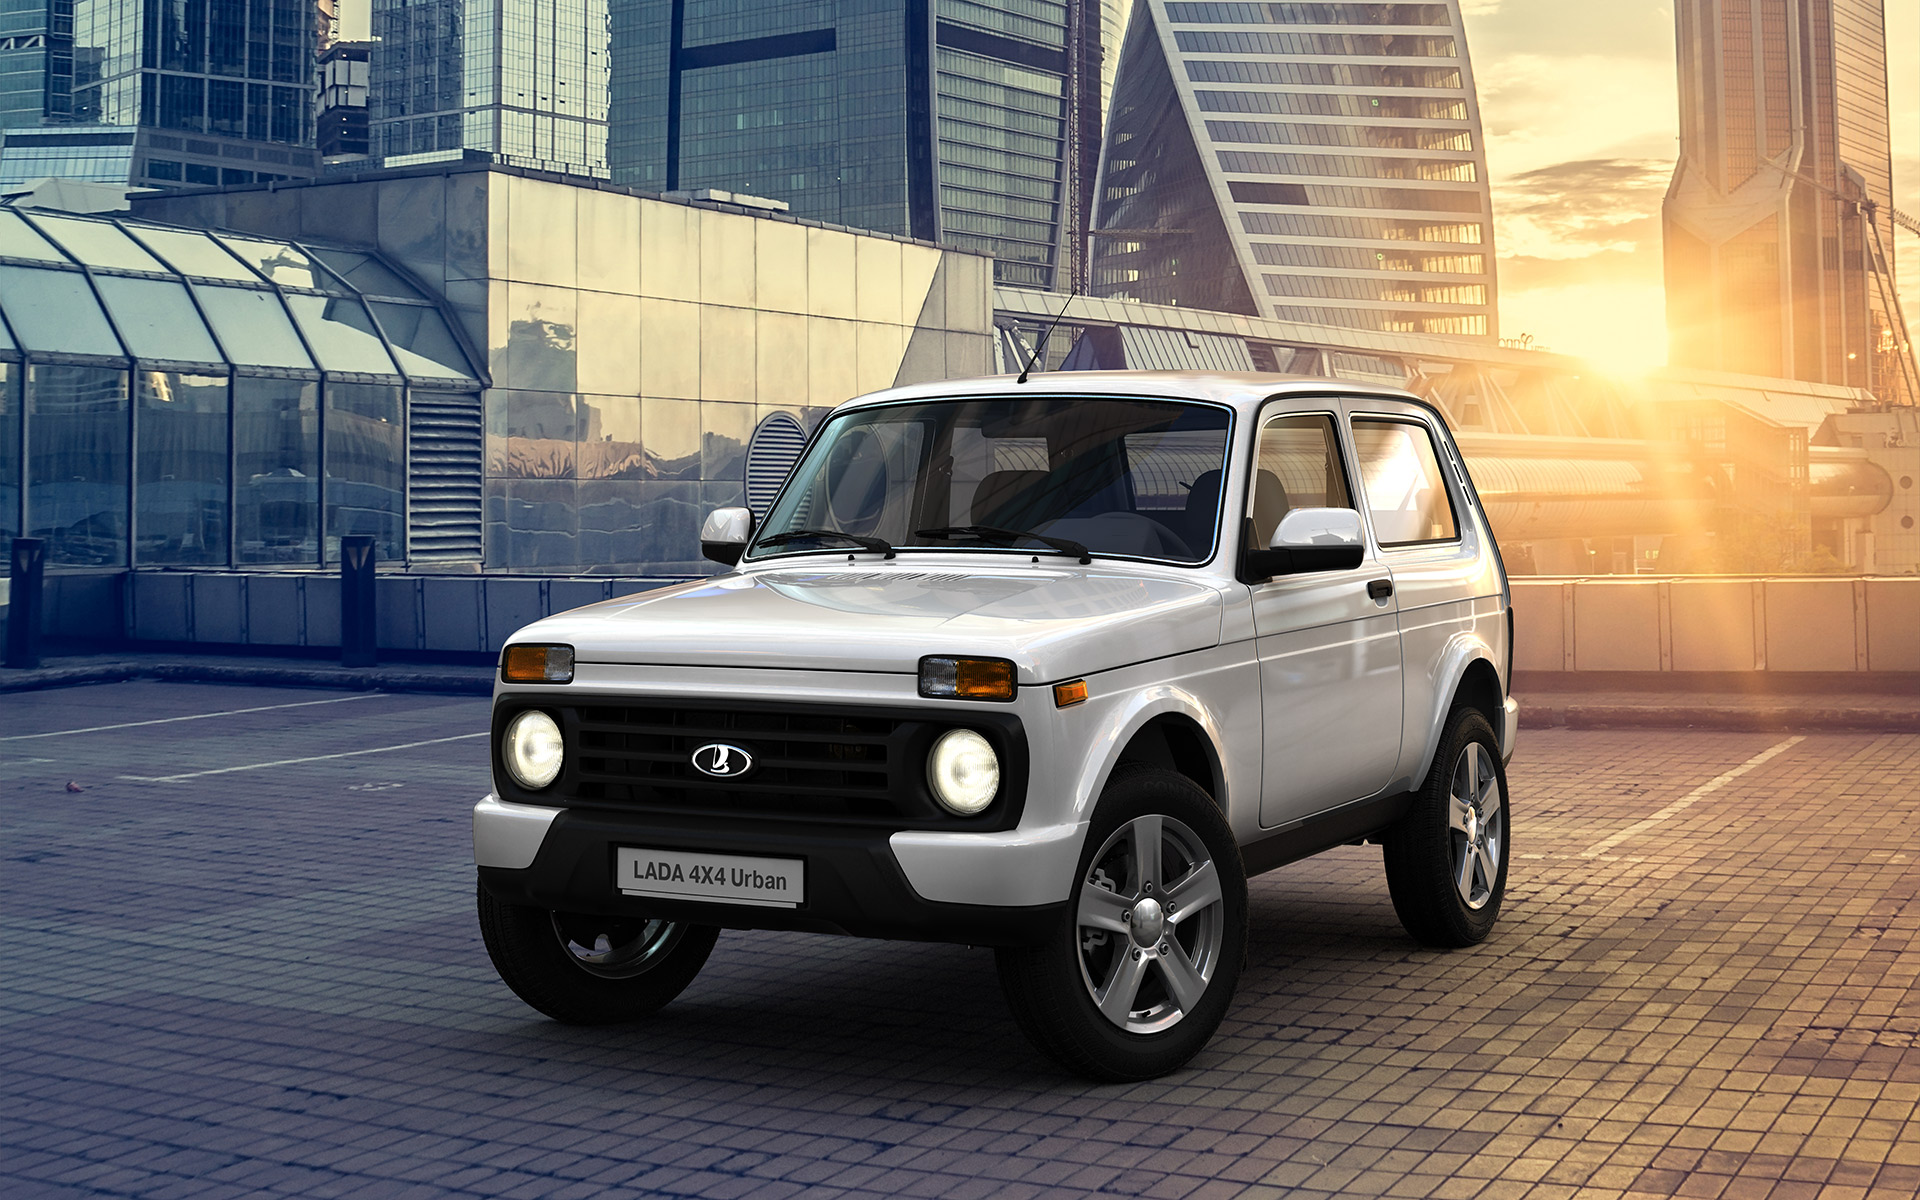 Jeep 2018 Models >> LADA 4x4 Urban - Review - LADA official website